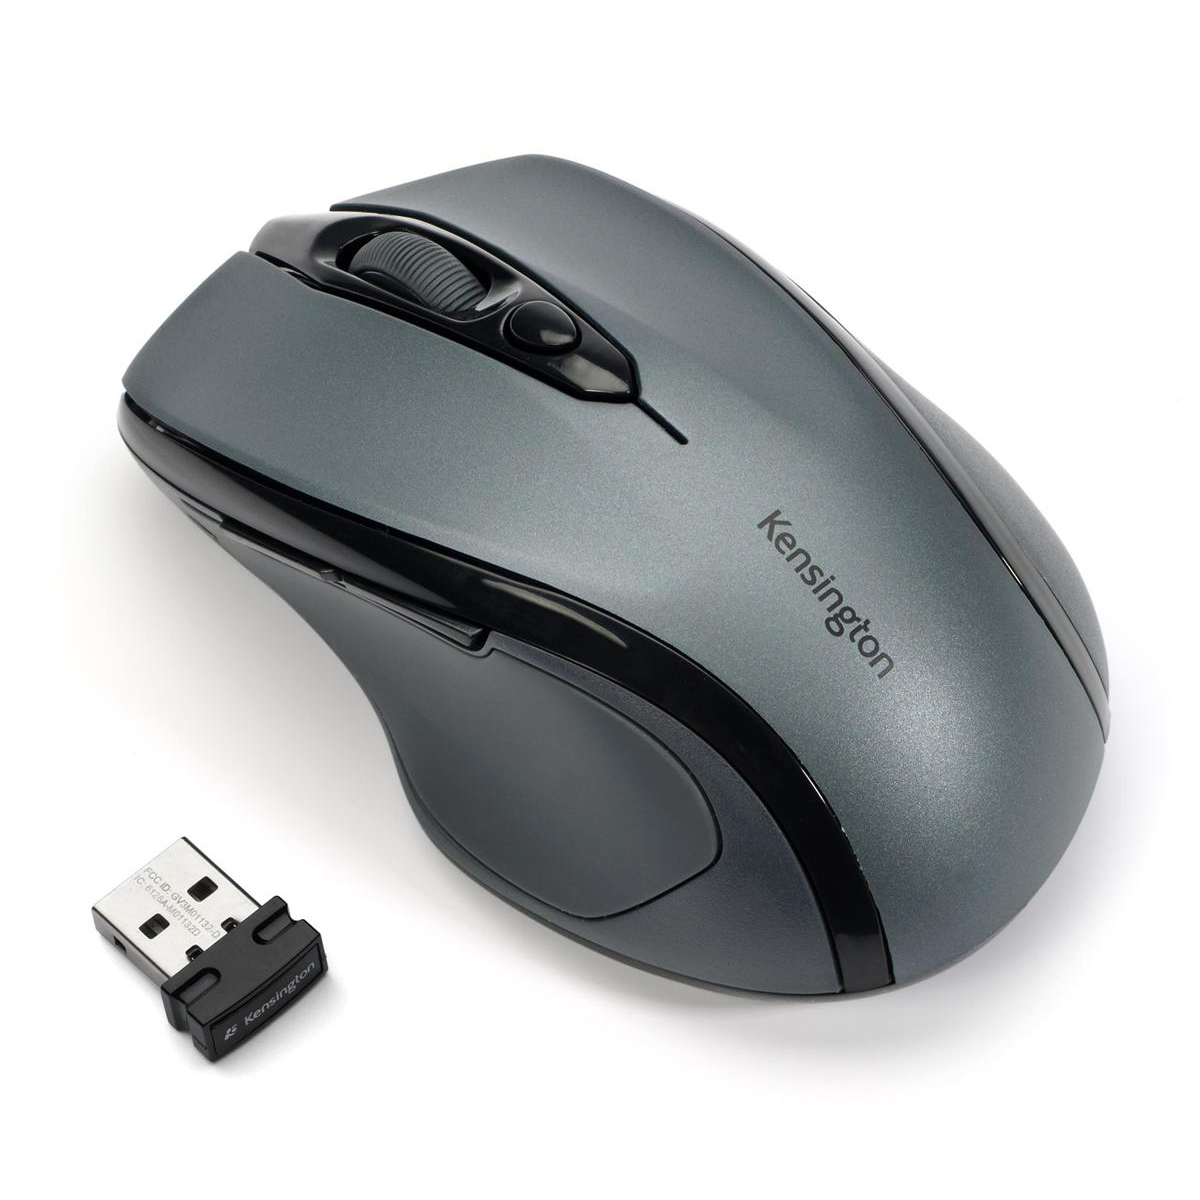 Wireless Kensington Pro Fit Mouse Mid-Size Optical Wireless Right Handed Graphite Grey Ref K72423WW